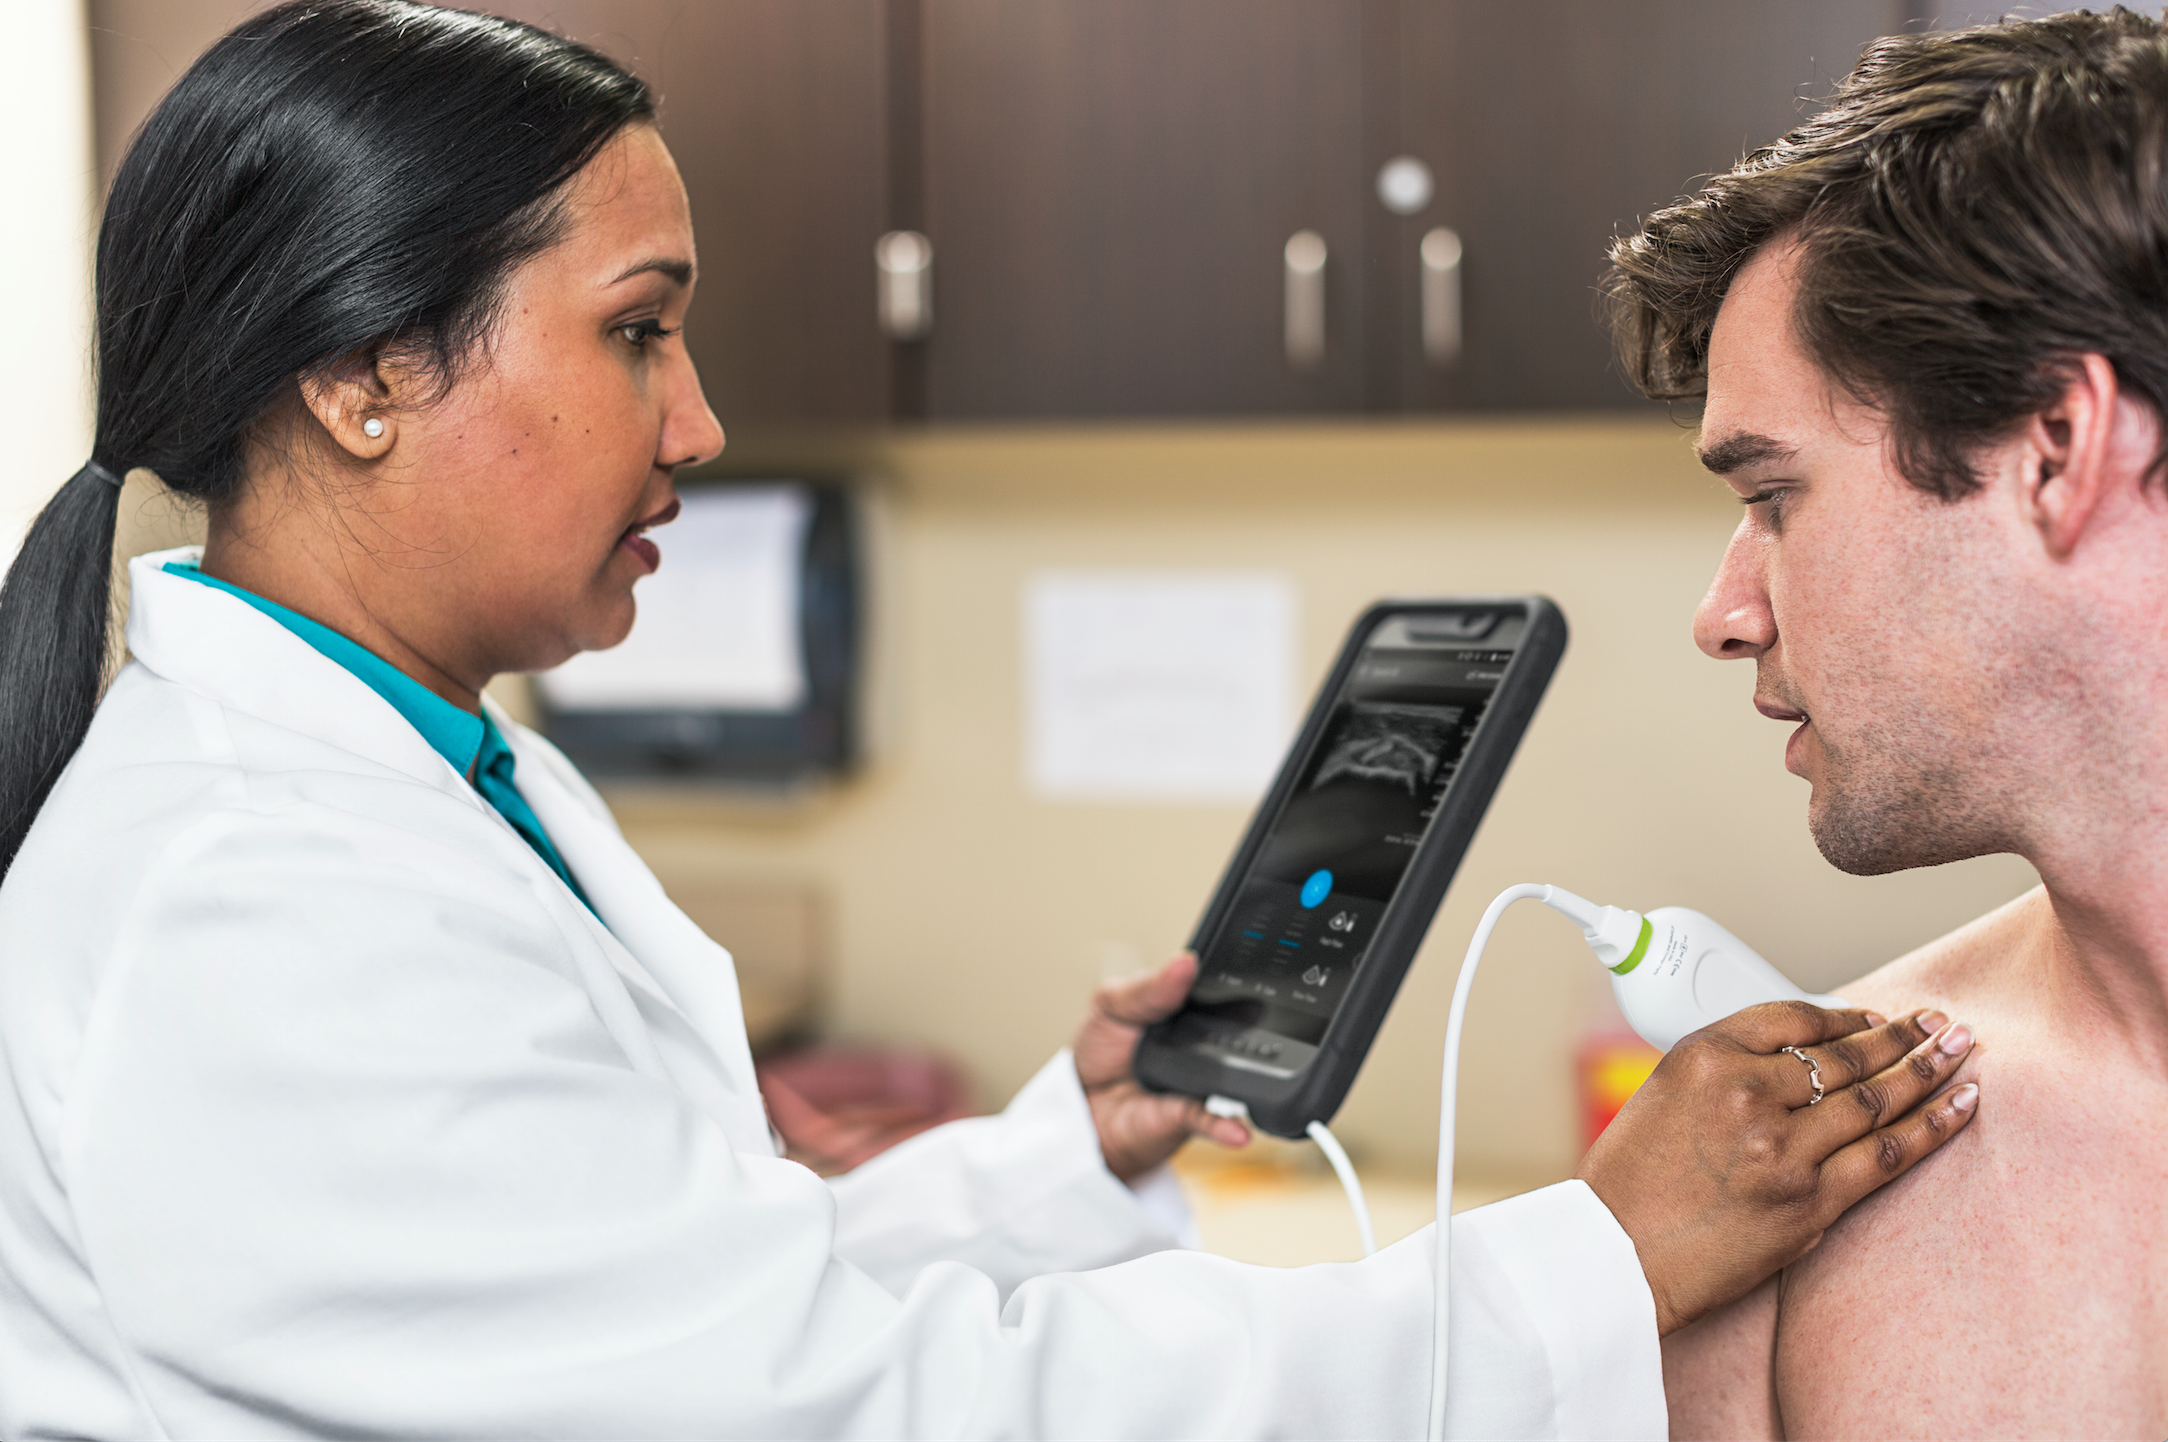 The Philips Lumify system introduces the concept of app-based-ultrasound. It turns an Android mobile device into diagnostic ultrasound system using a linear or a phased array transducer that plugs into an Android phone or tablet micro USB port.